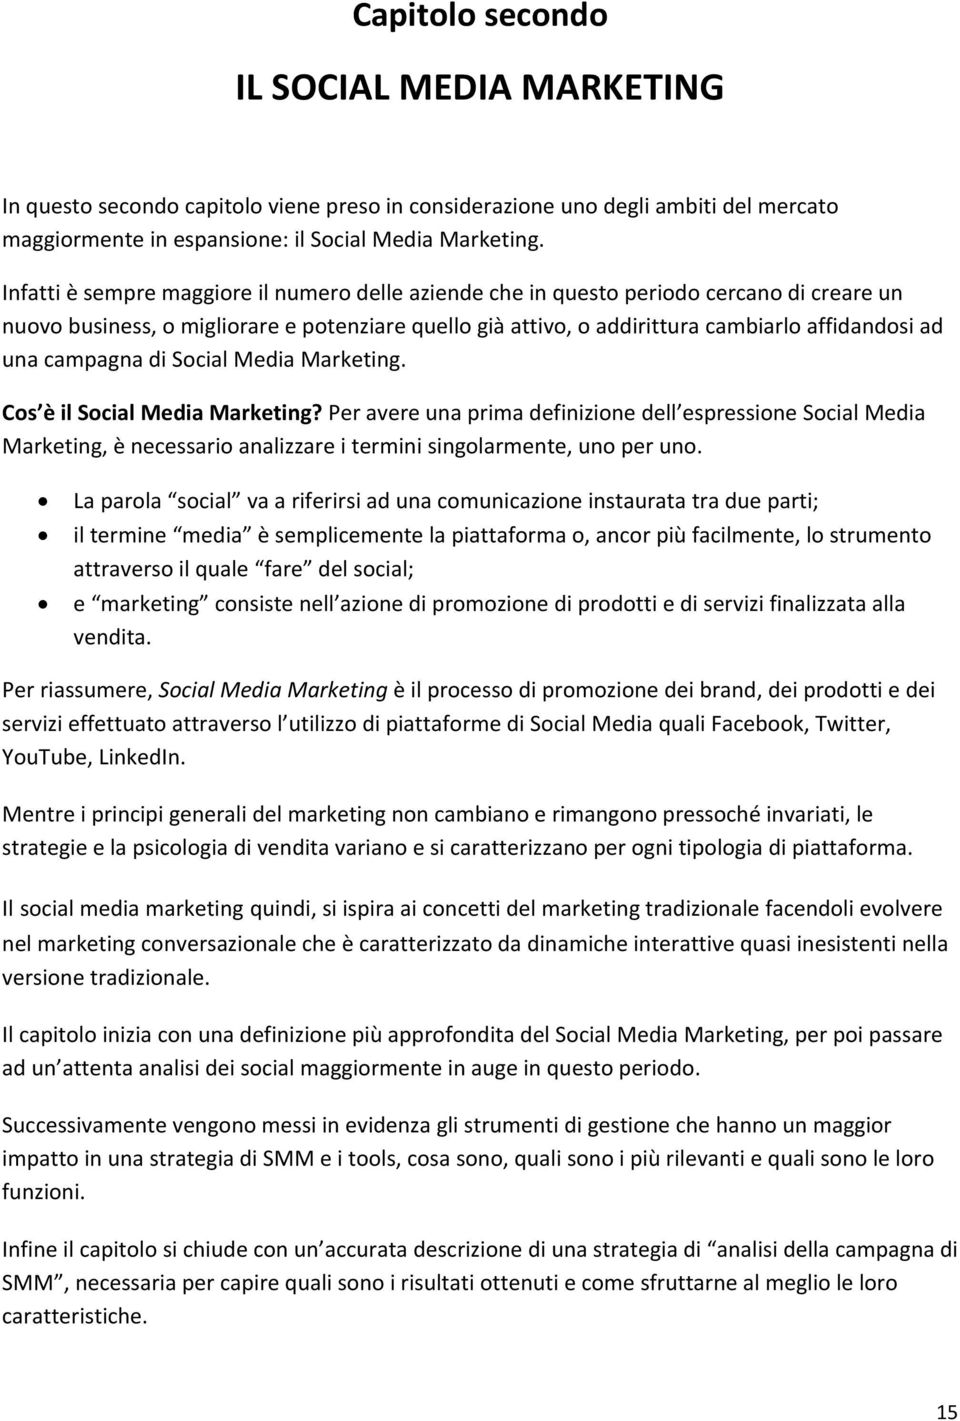 campagna di Social Media Marketing. Cos è il Social Media Marketing?